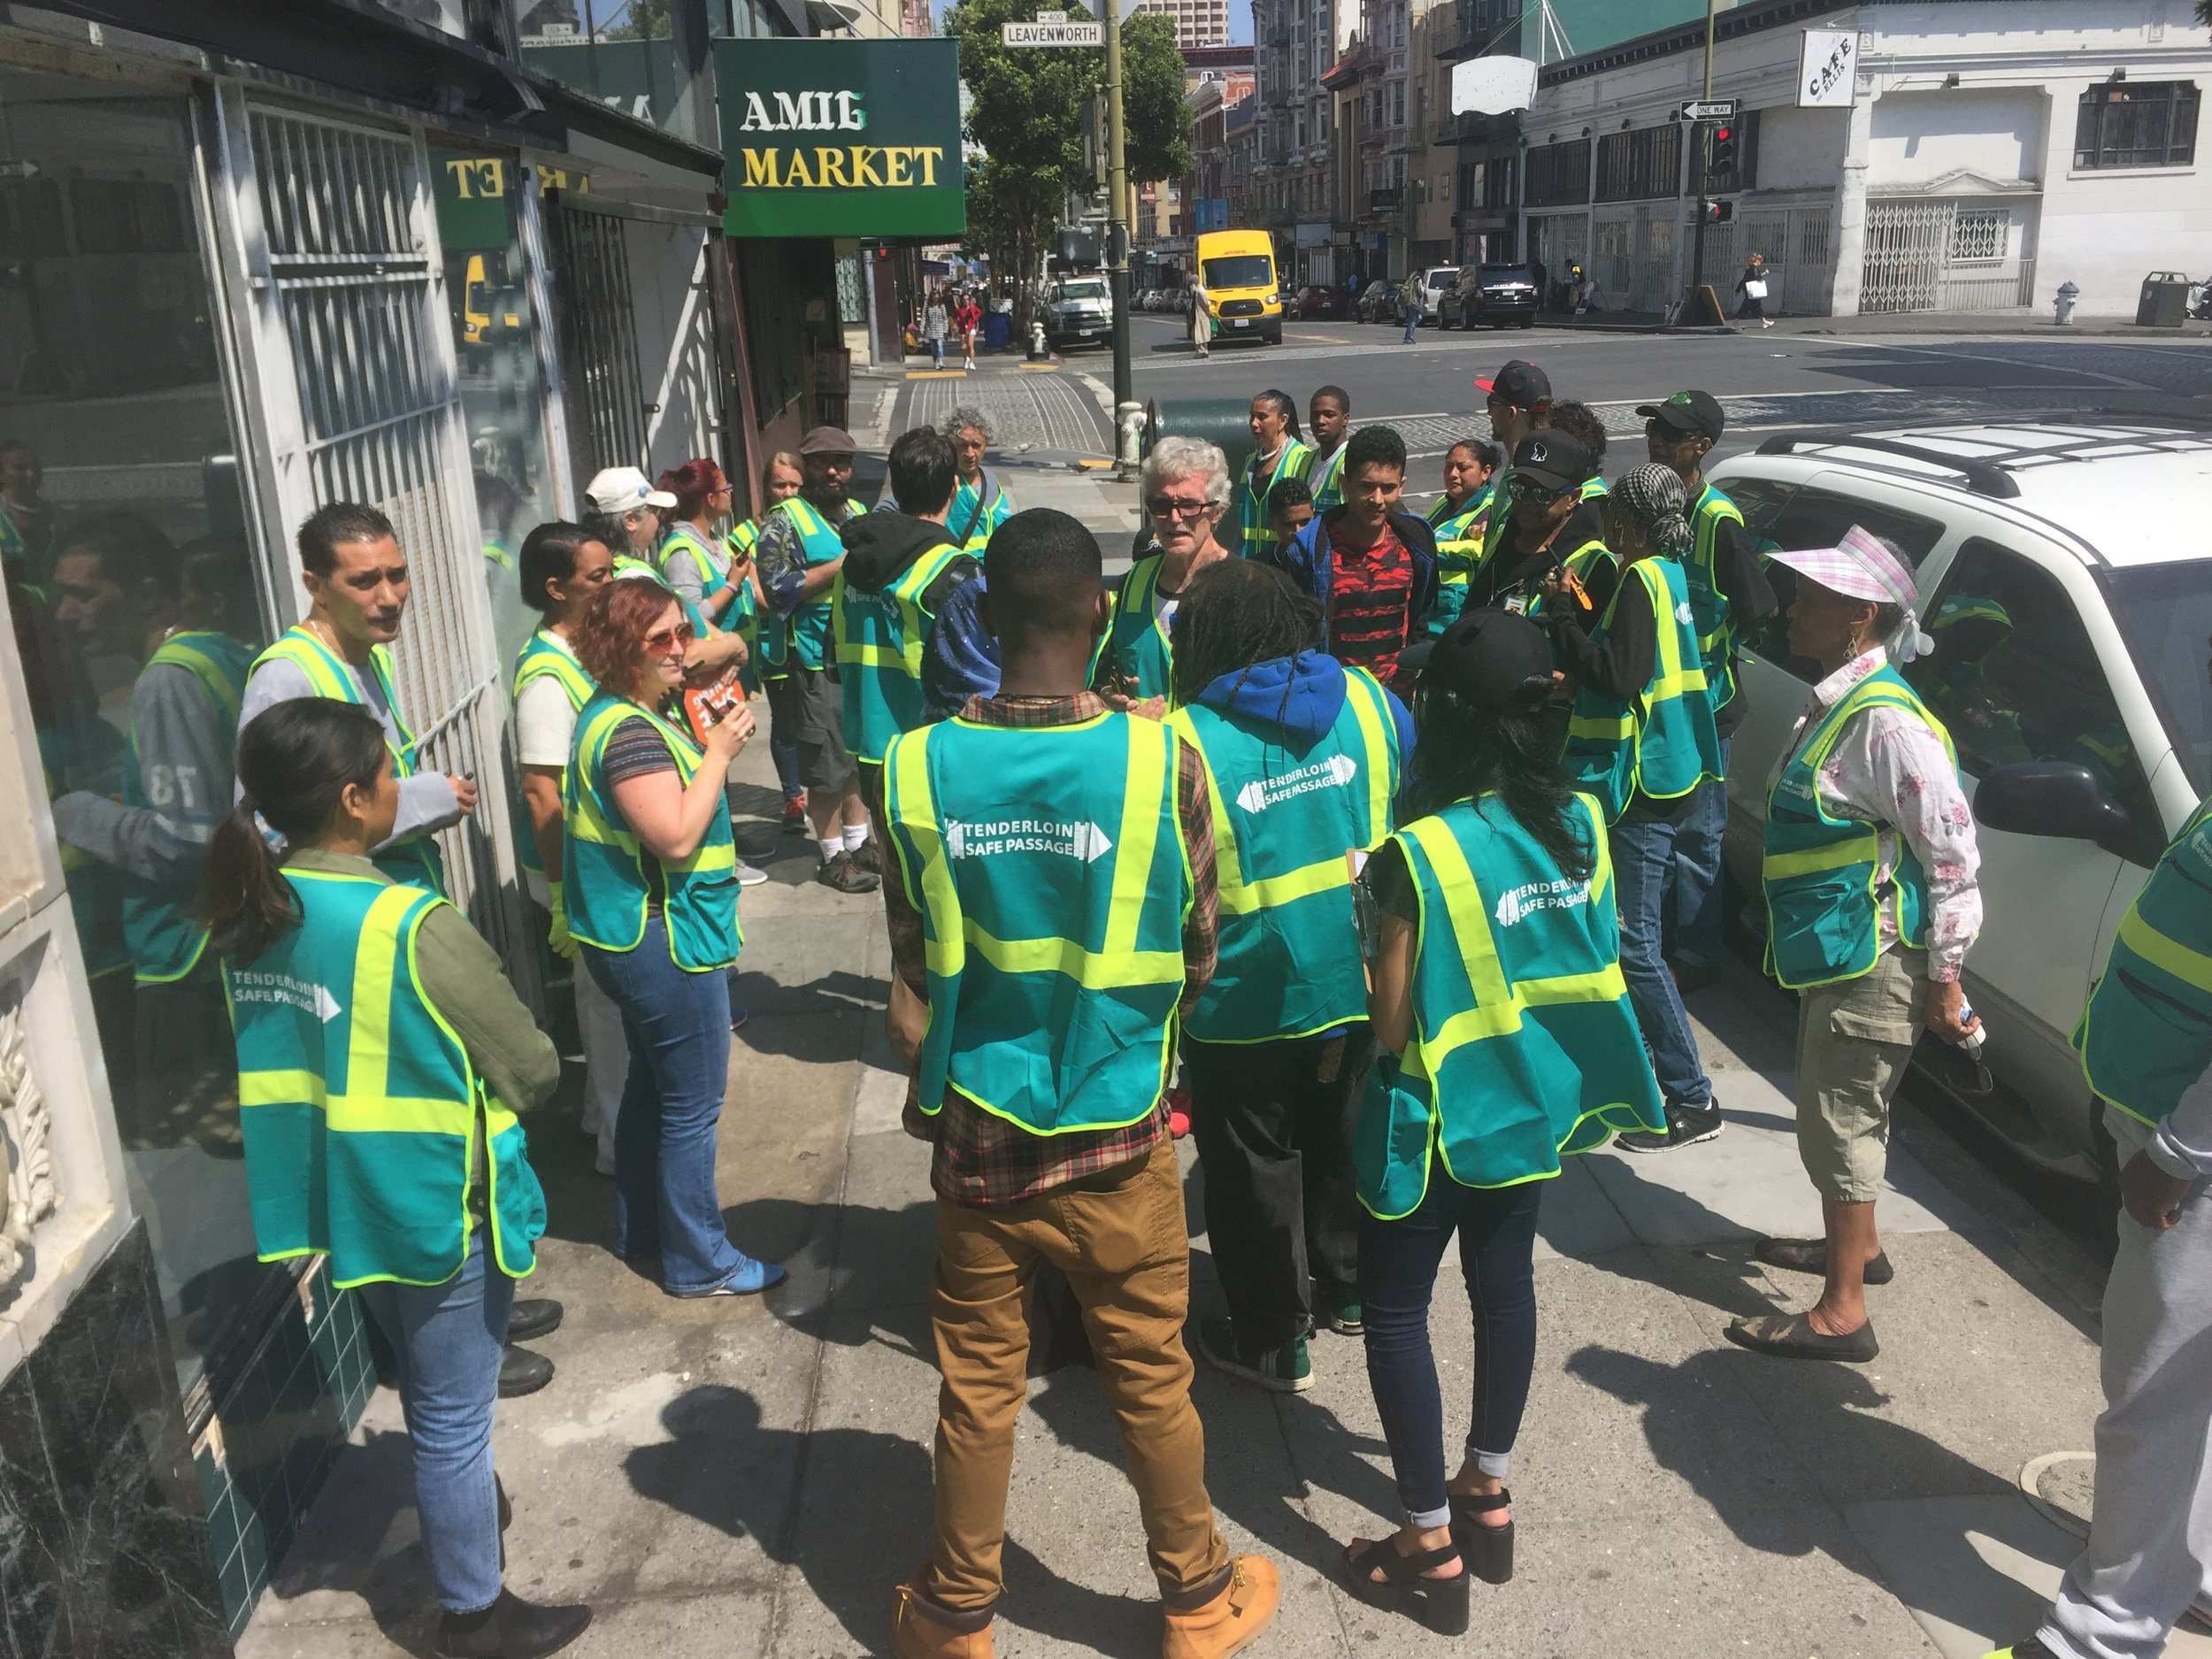 Safe Passage Corner Captains and other volunteers ready for the first shift of the new school year. Photo: Tenderloin Community Benefit District